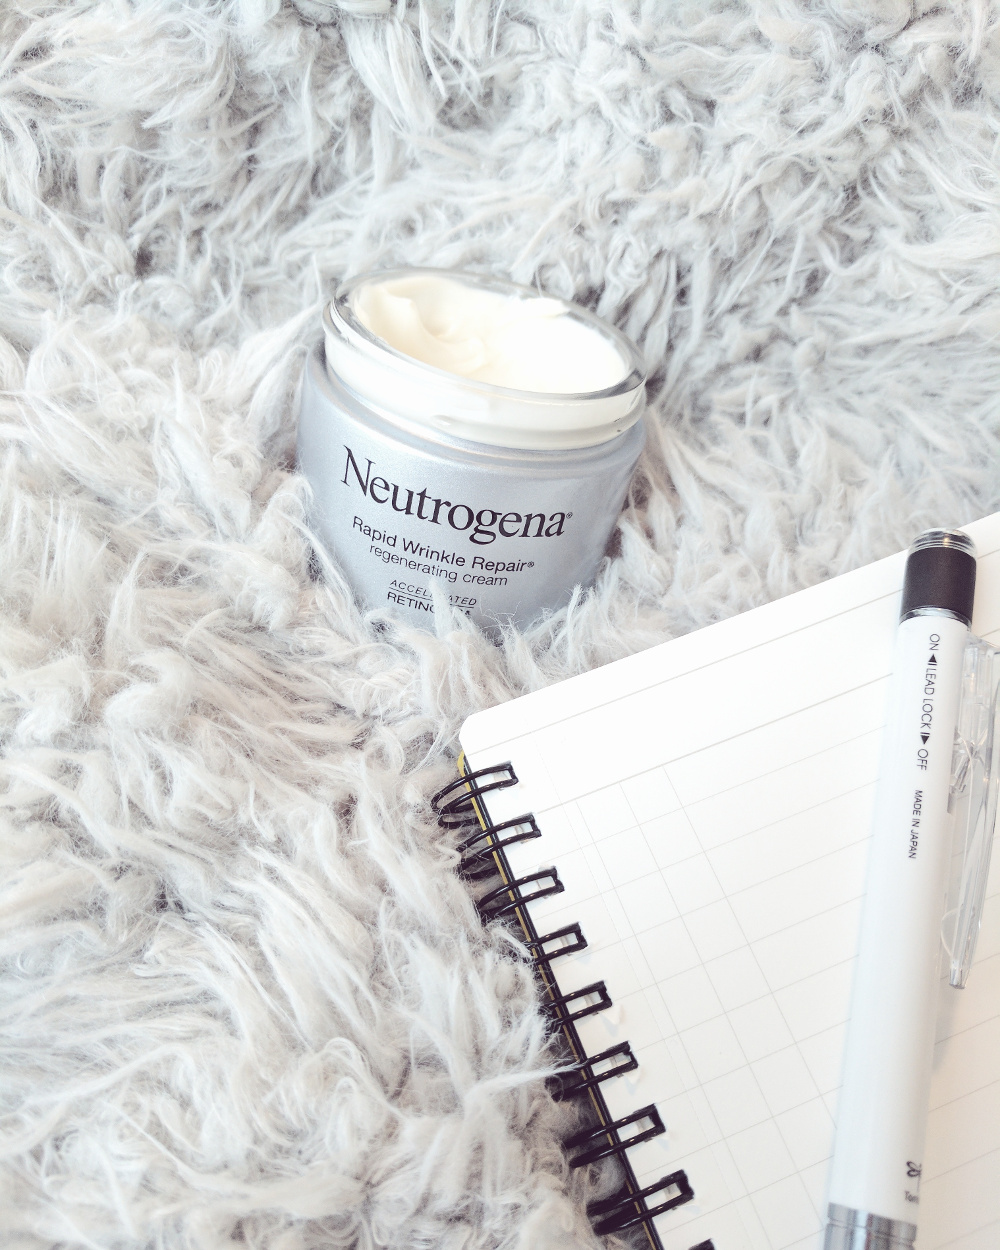 Neutrogena Rapid Winkle Repair